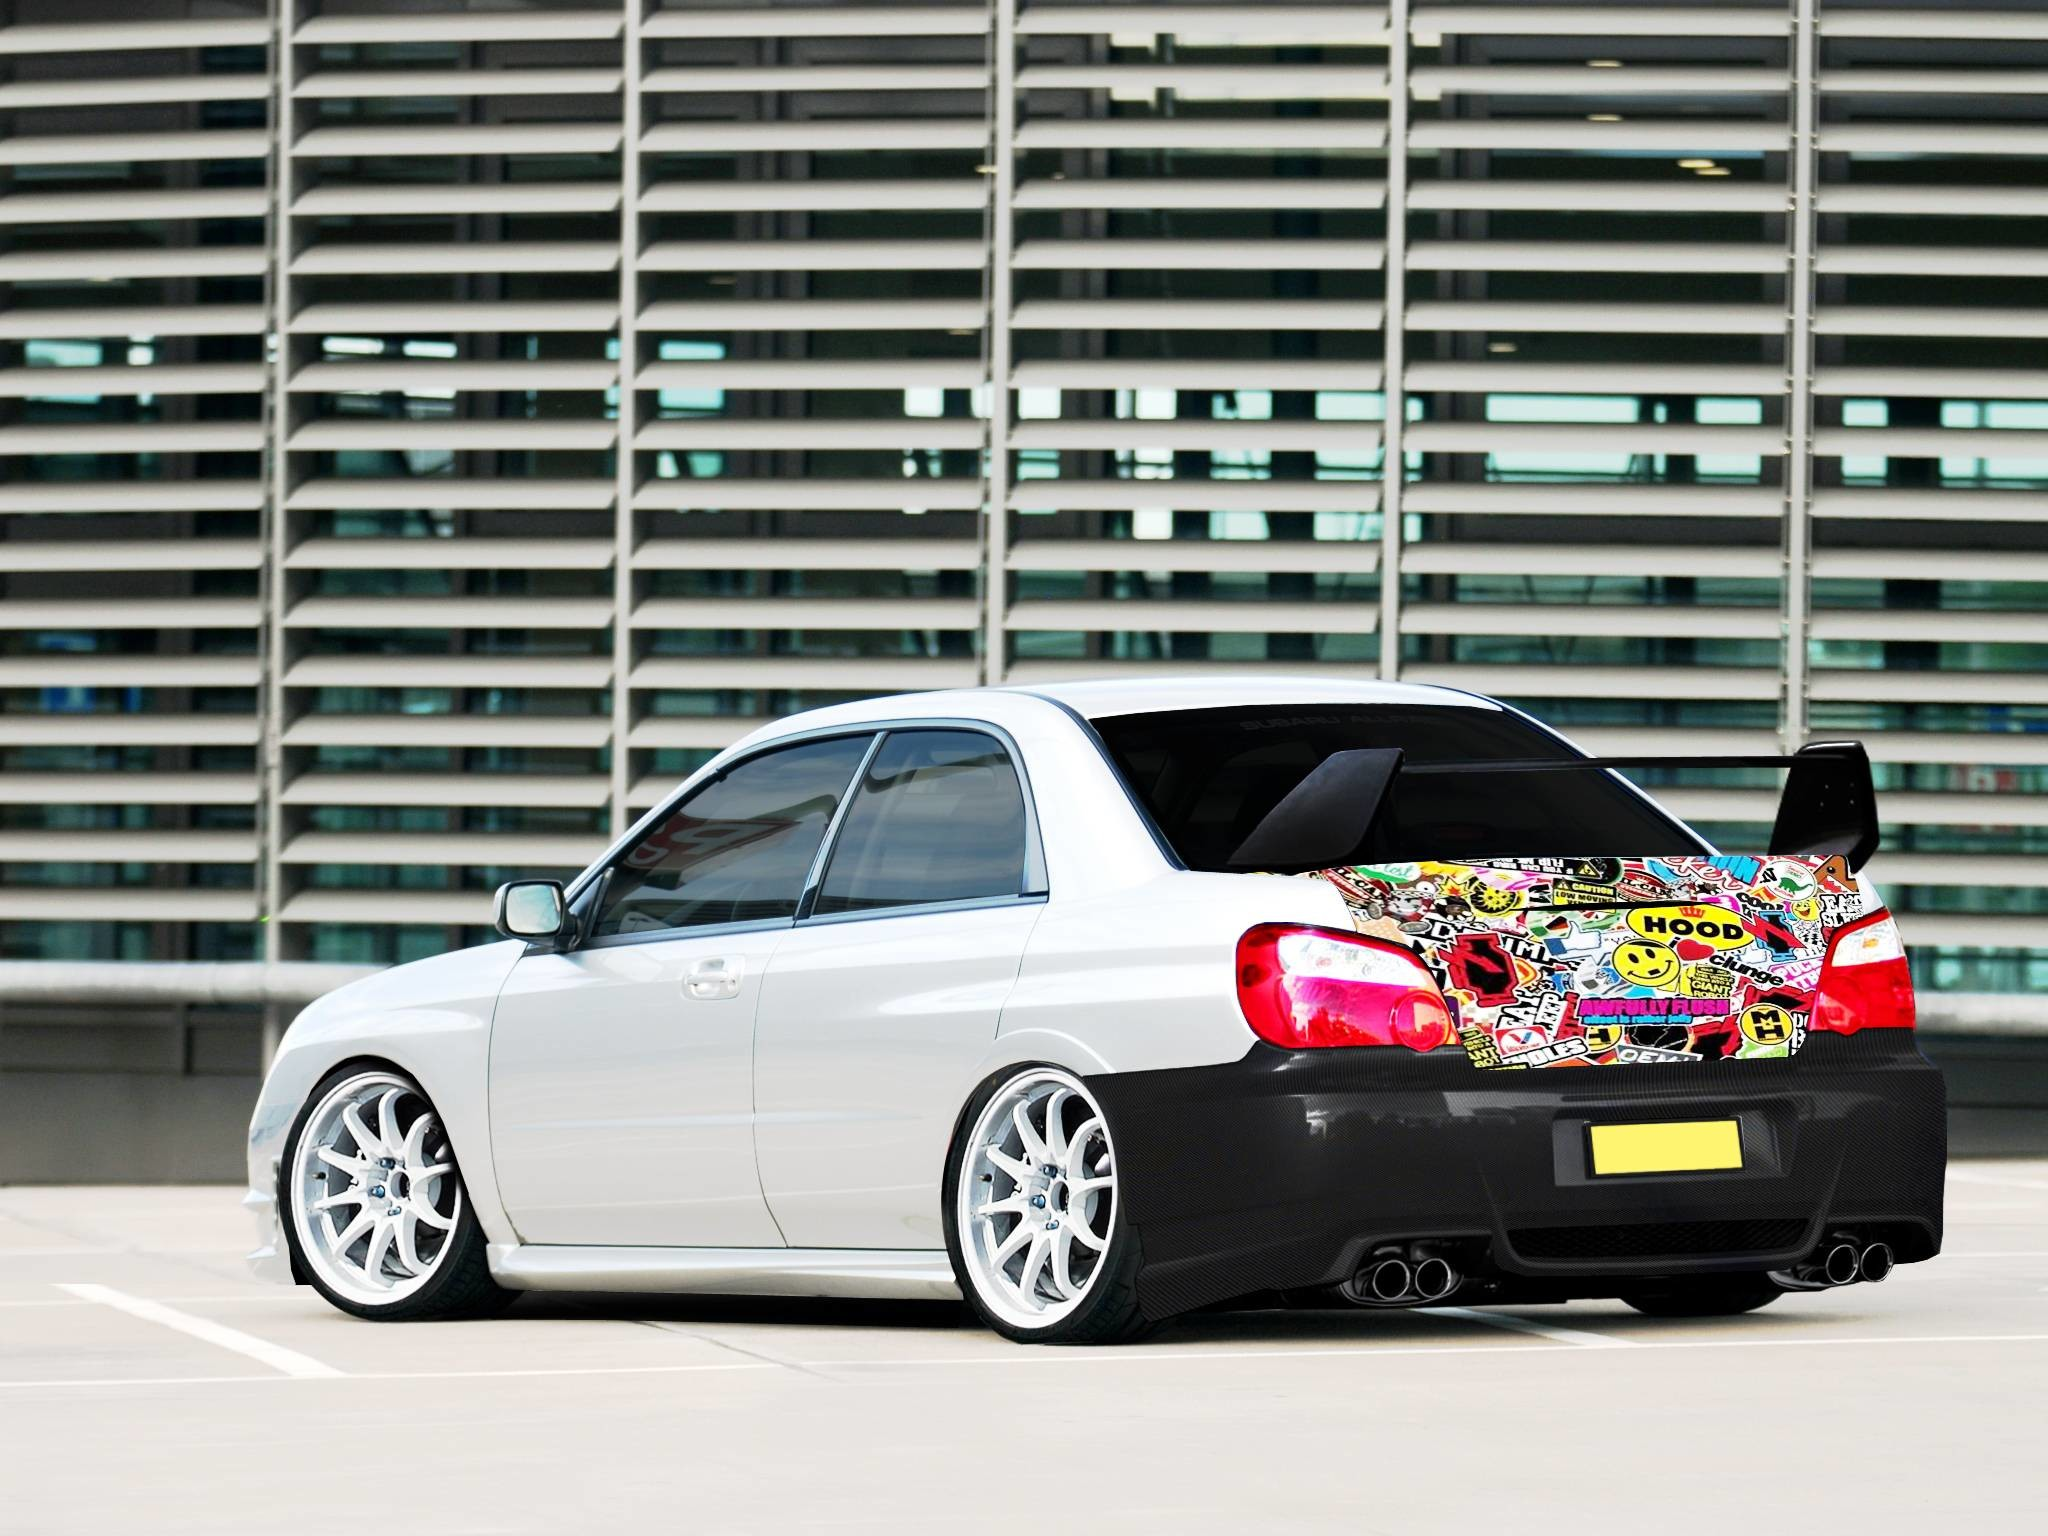 2048x1536 Hellaflush Wallpaper 2048×1536 Hellaflush Wallpapers (50 Wallpapers) |  Adorable Wallpapers. Sticker BombTuner ...